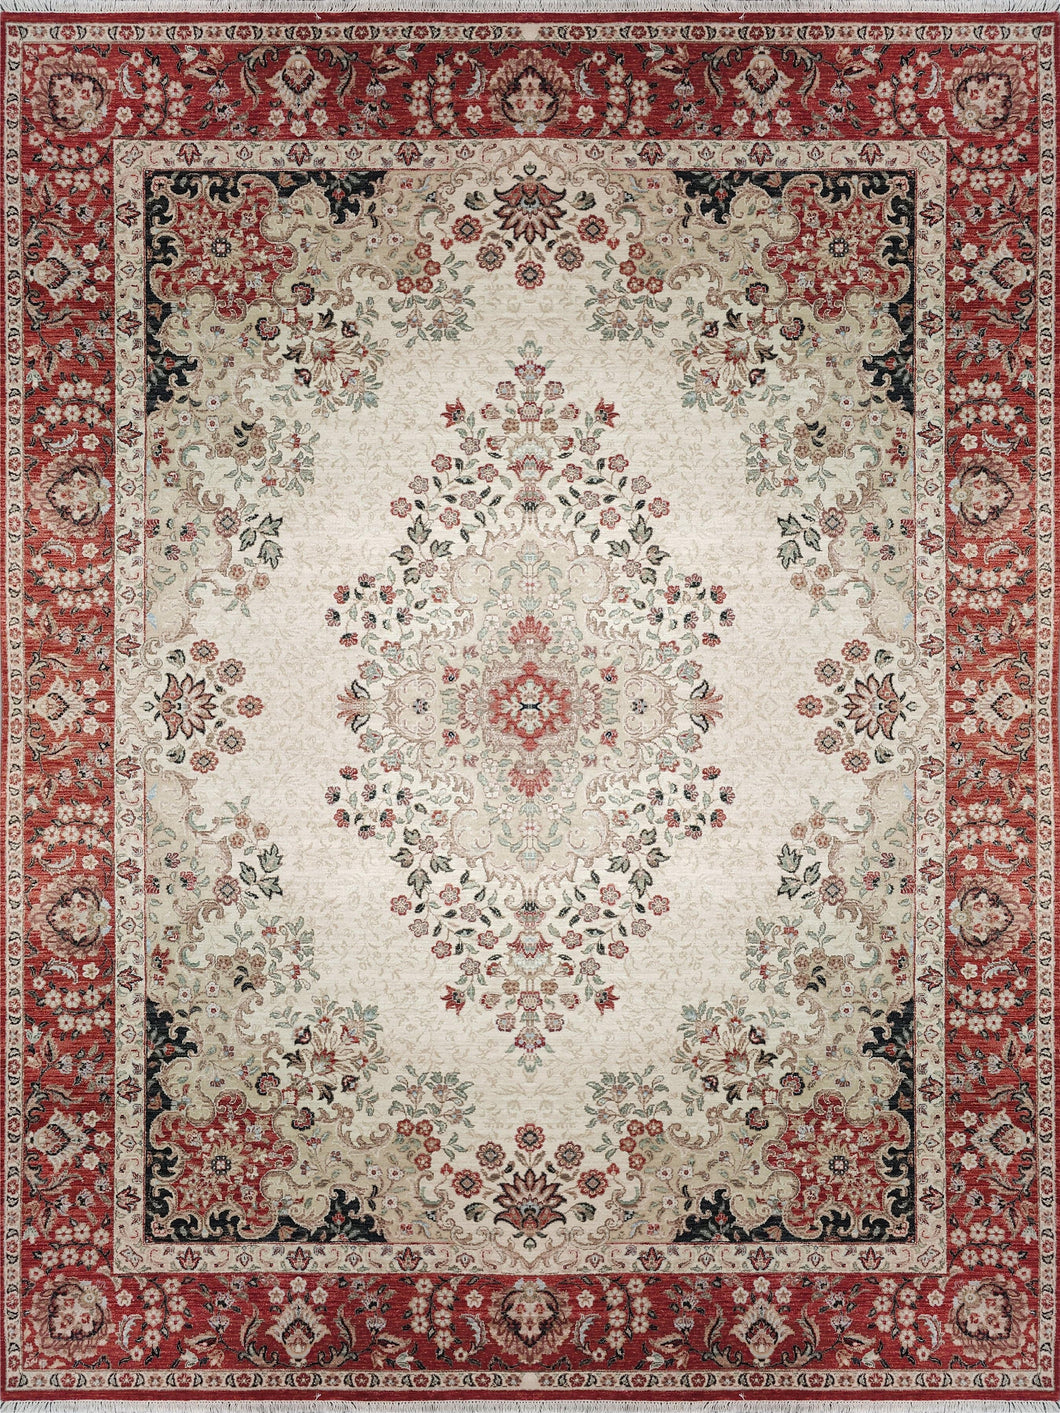 The Rugs Cafe 9x12 / Cream Red Cream Traditional Rug with Medallion